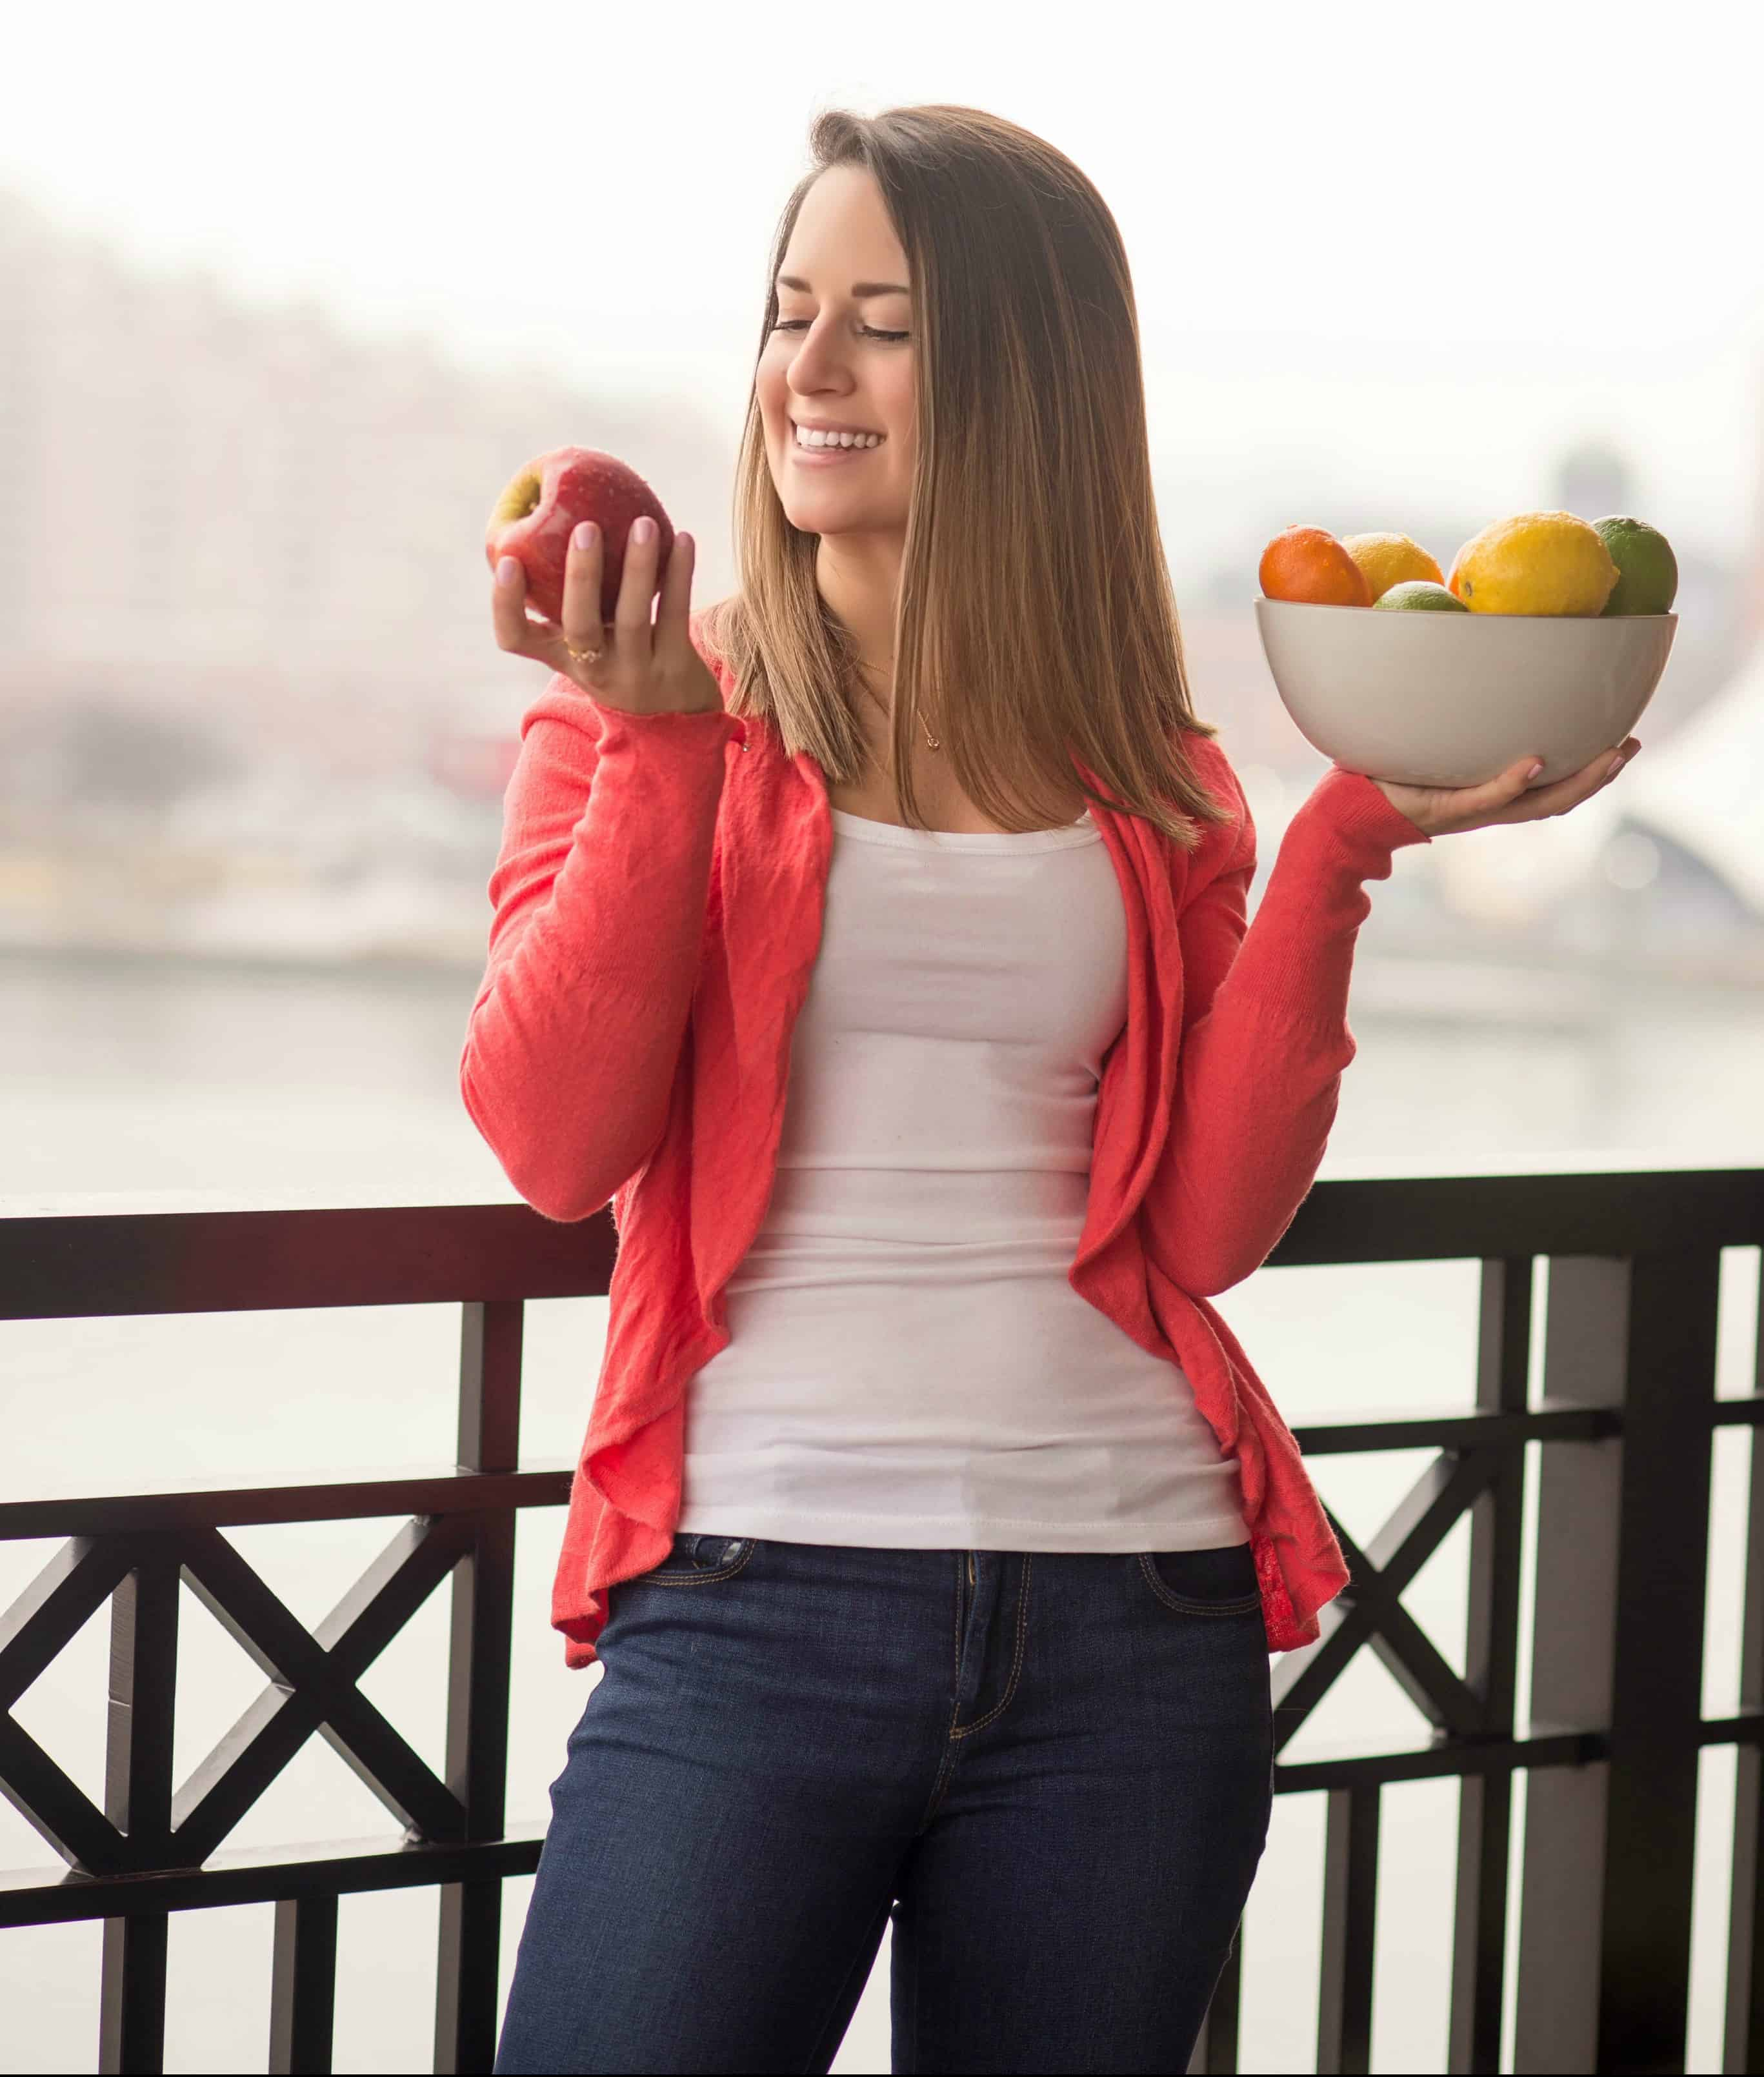 me holding a bowl of fruit